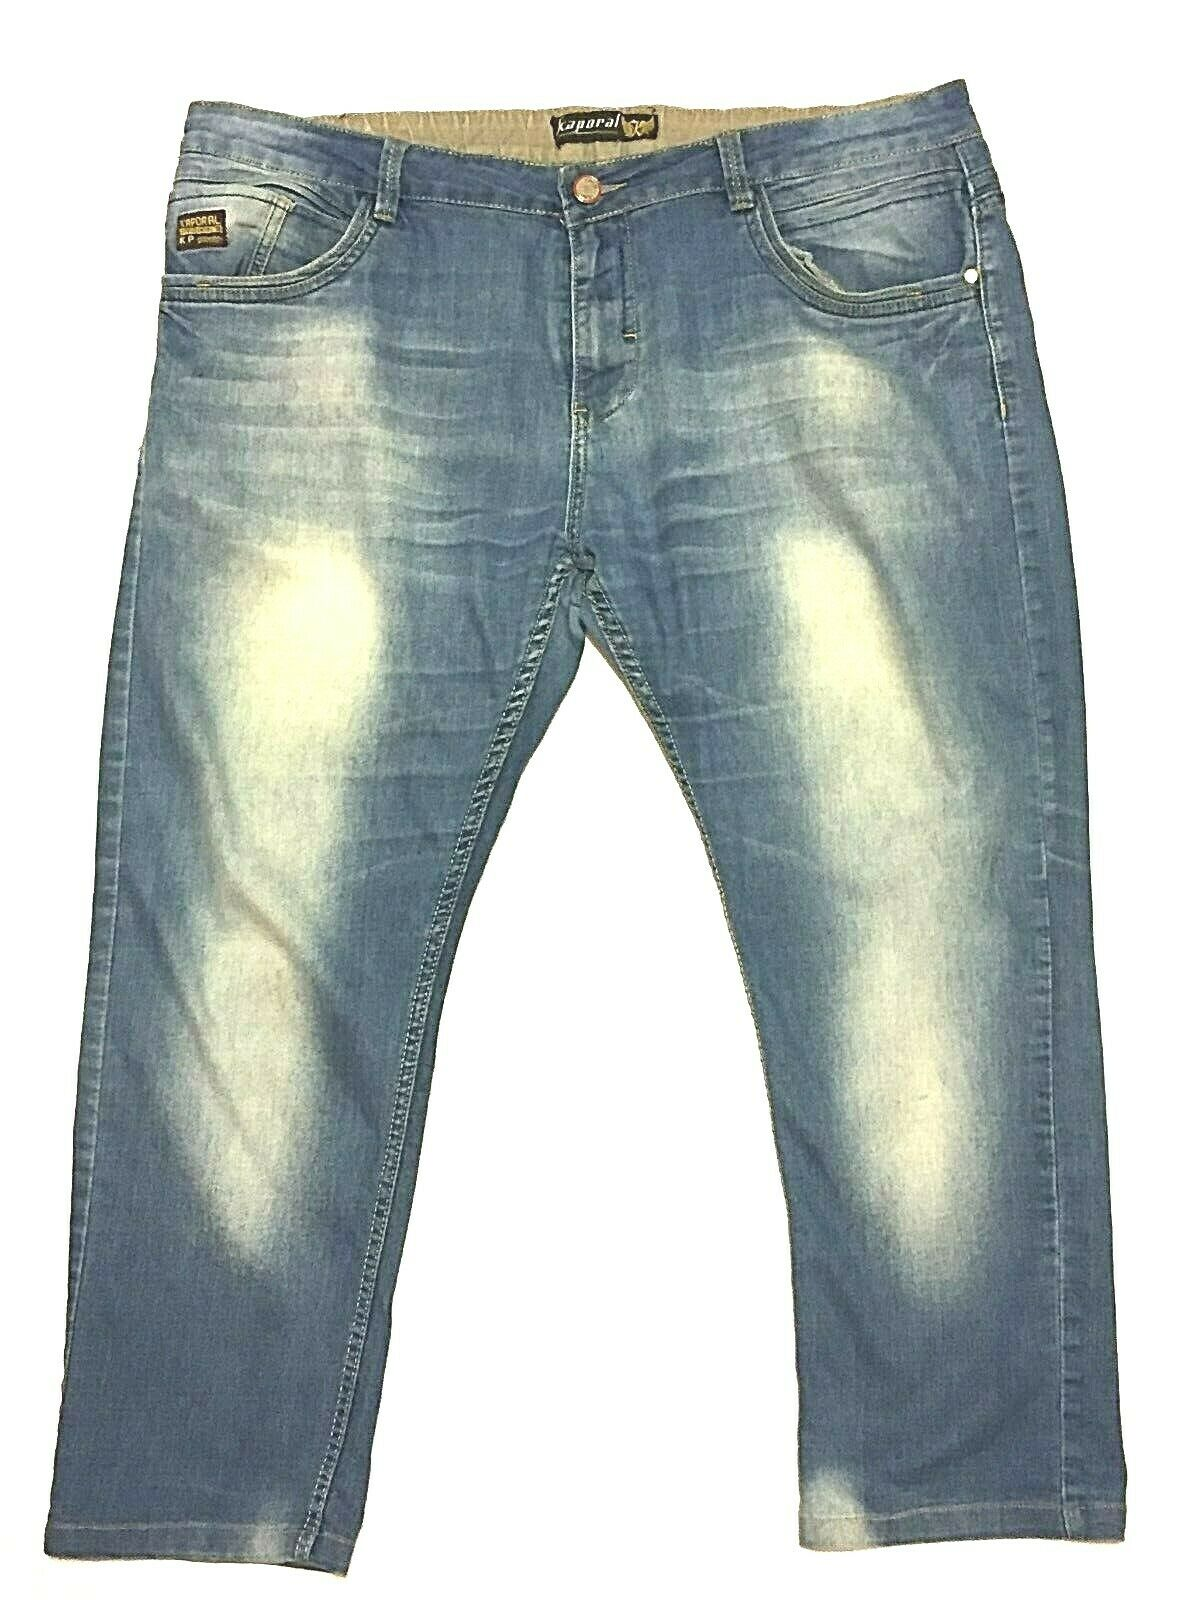 Womens Kaporal 42 Straight leg 42 X 27 Stretch bluee Jeans